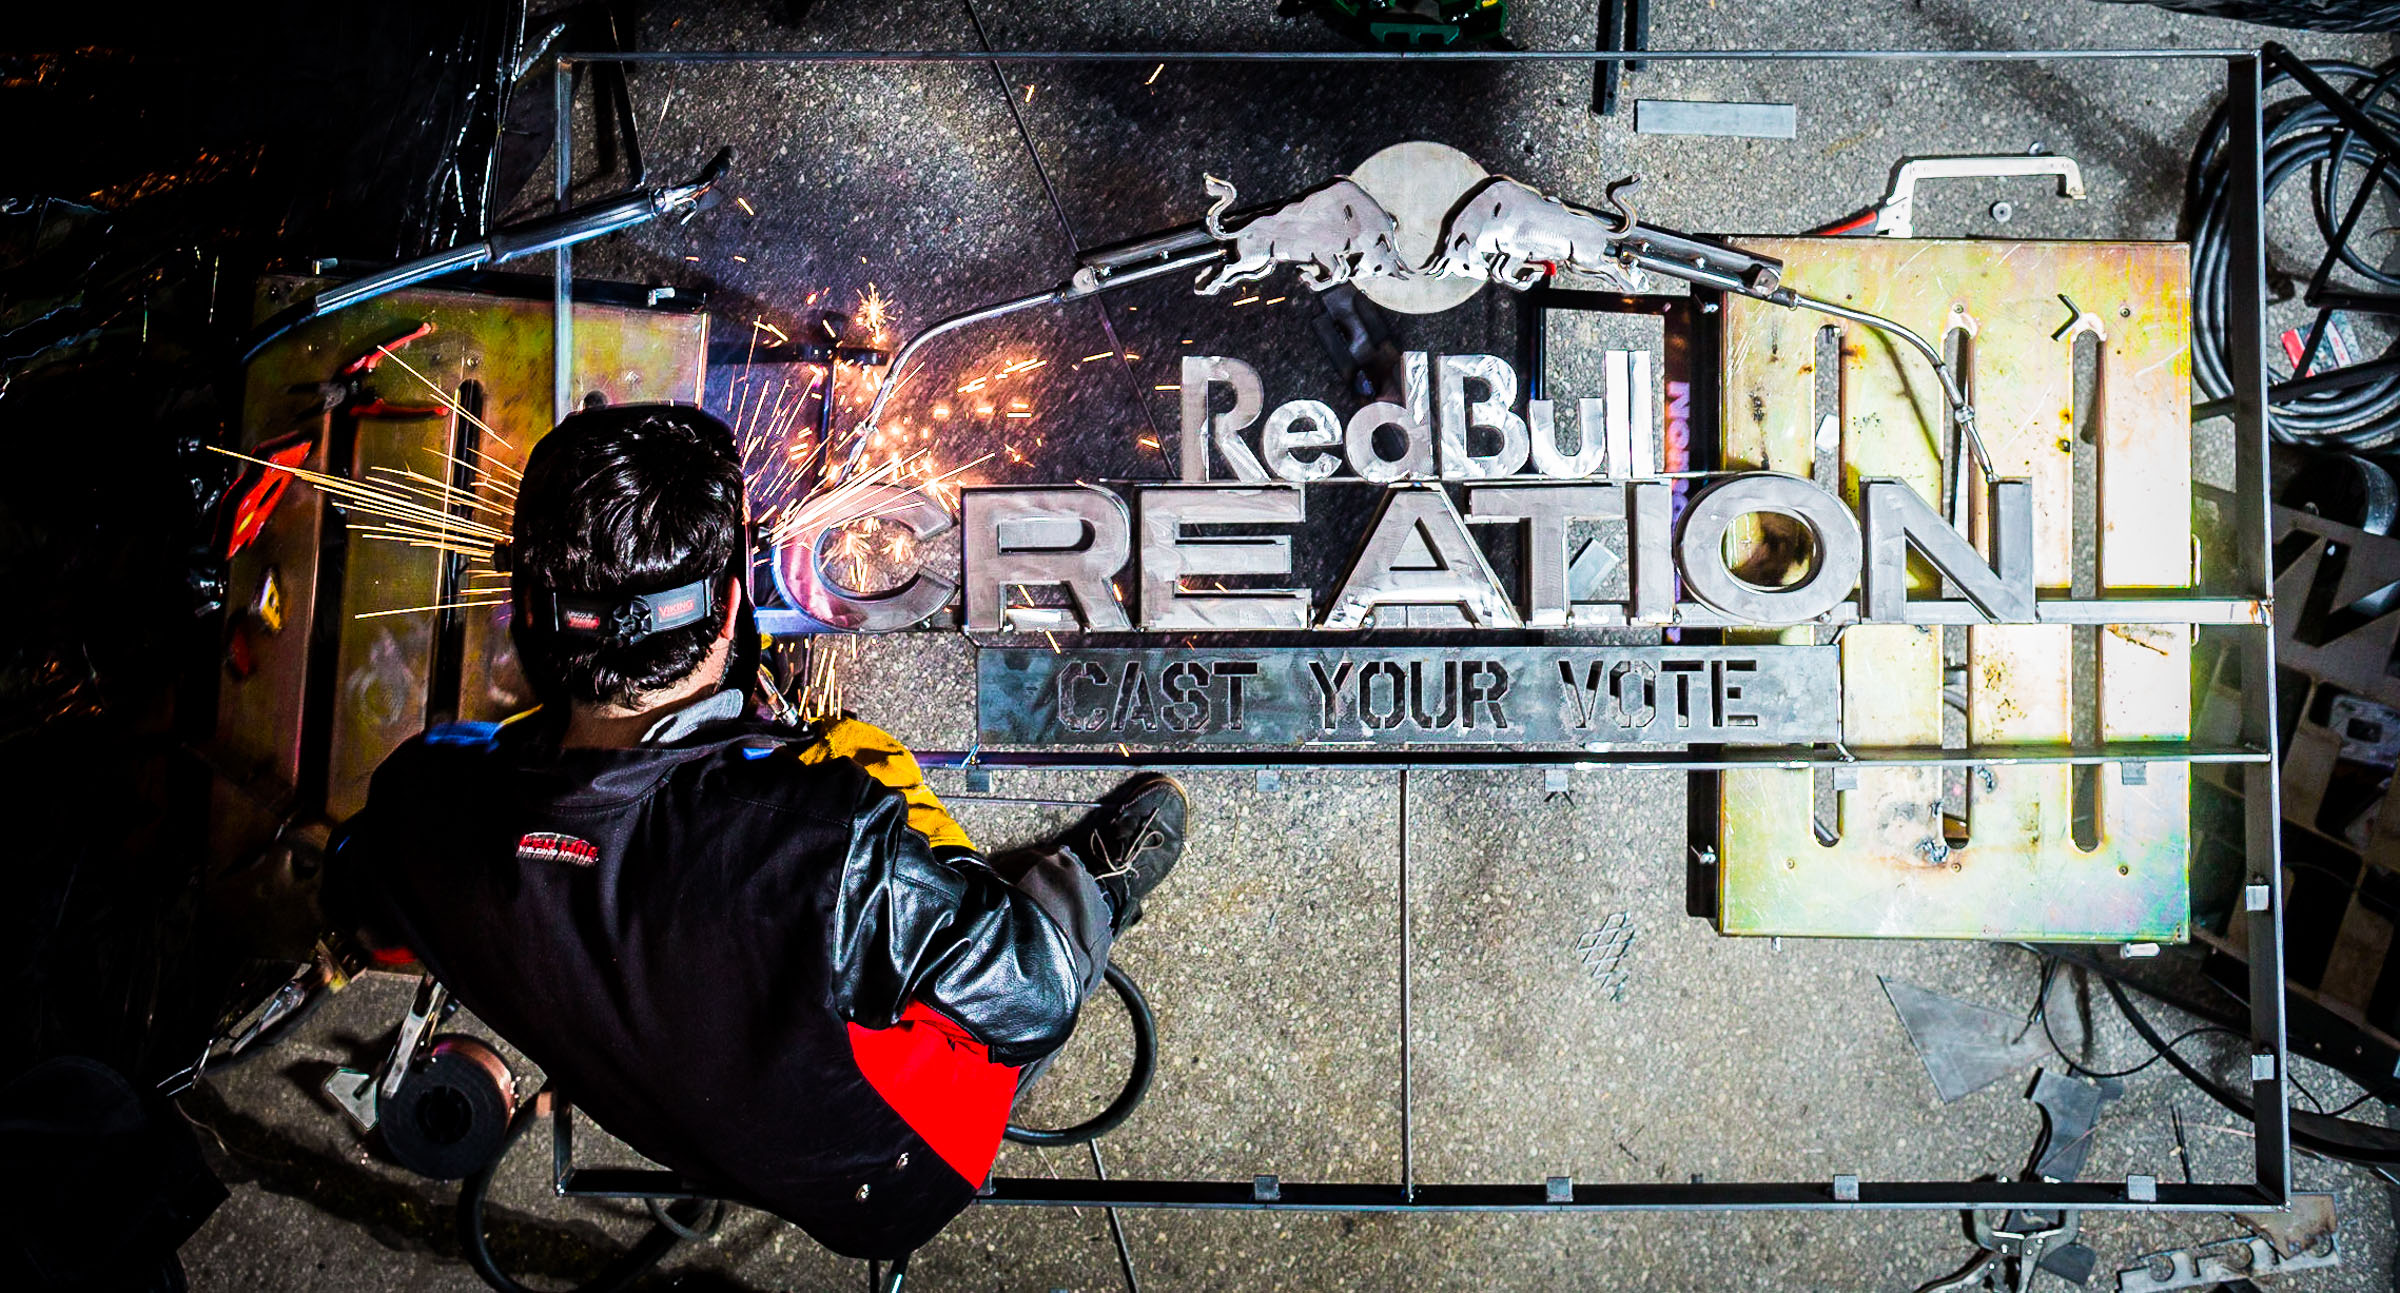 RedBull Creation Design/Build Competition. Williamsburg NY